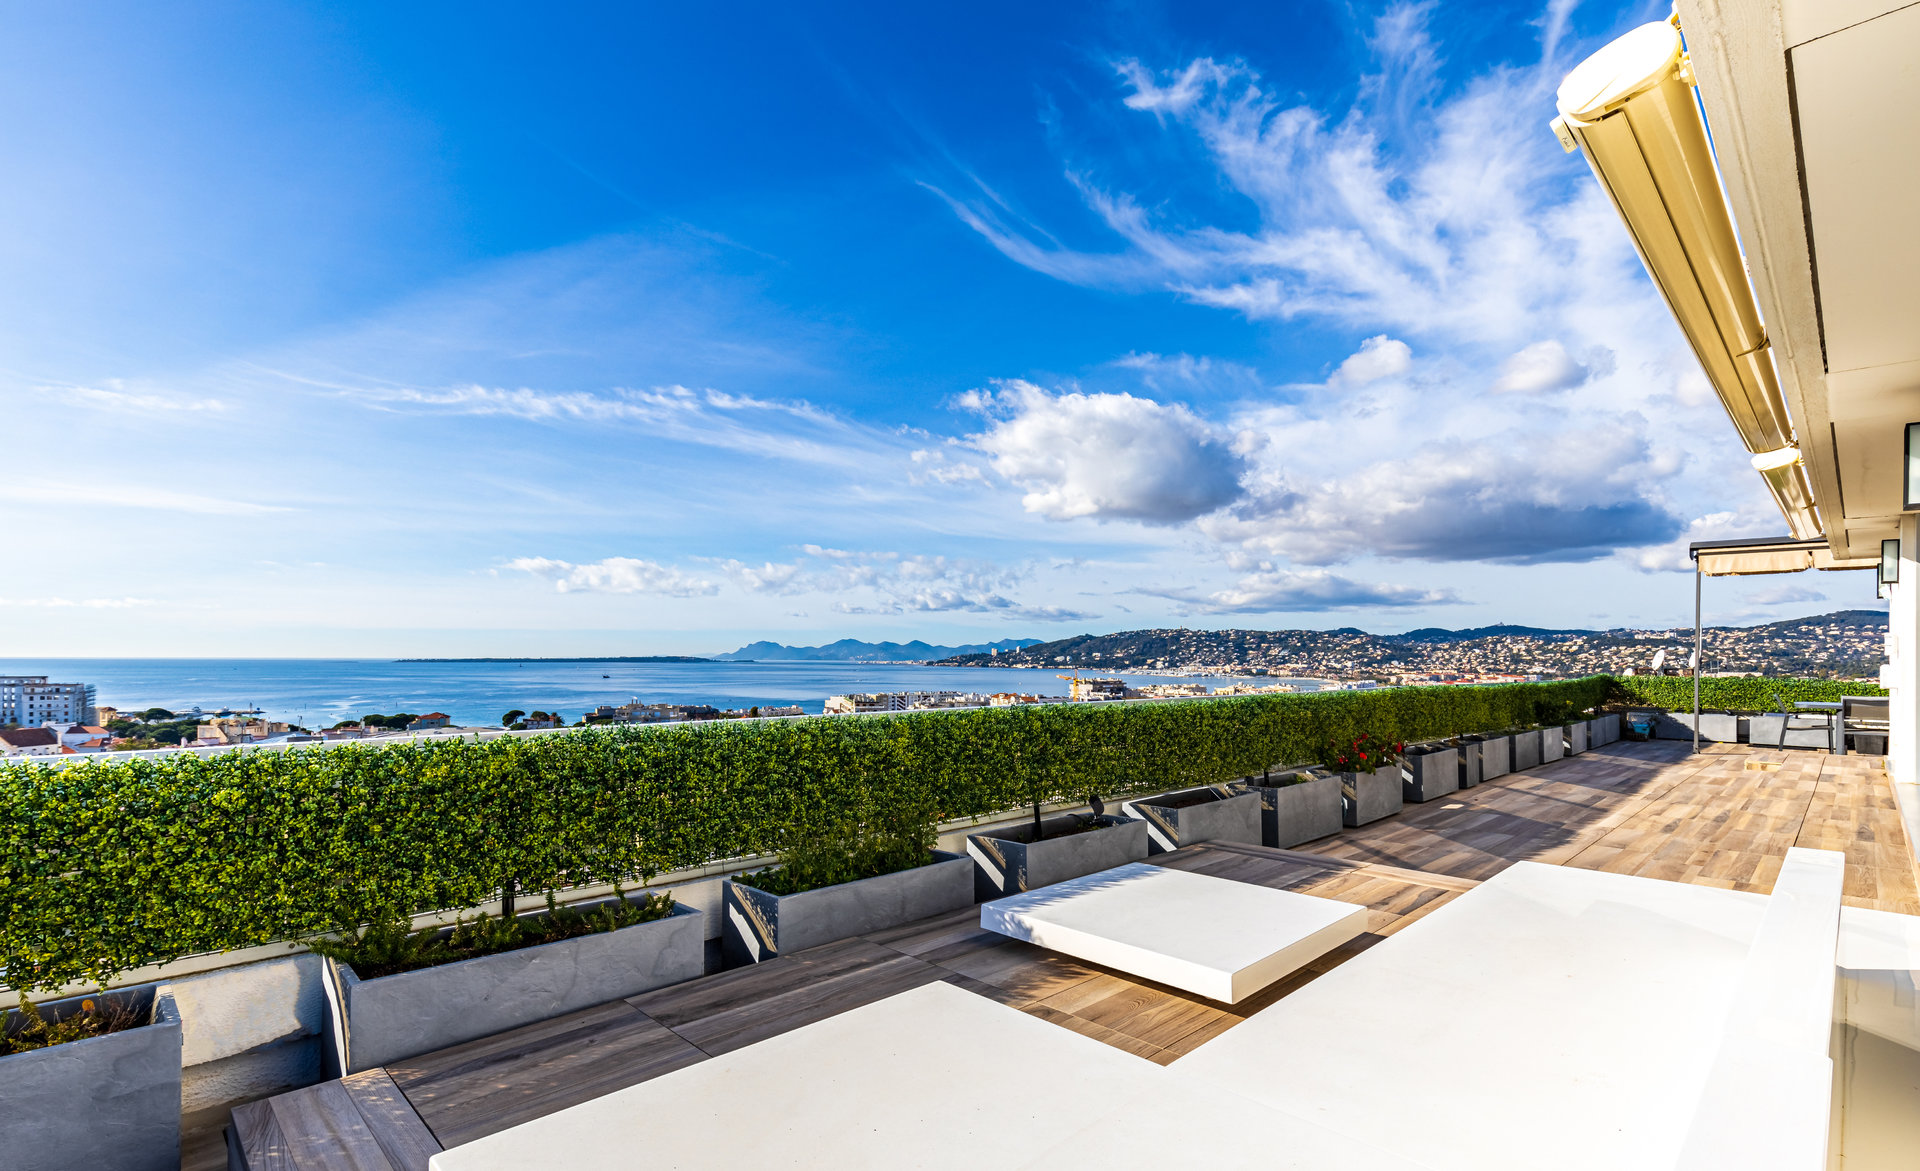 Penthouse with stunning sea and mountain views in Antibes